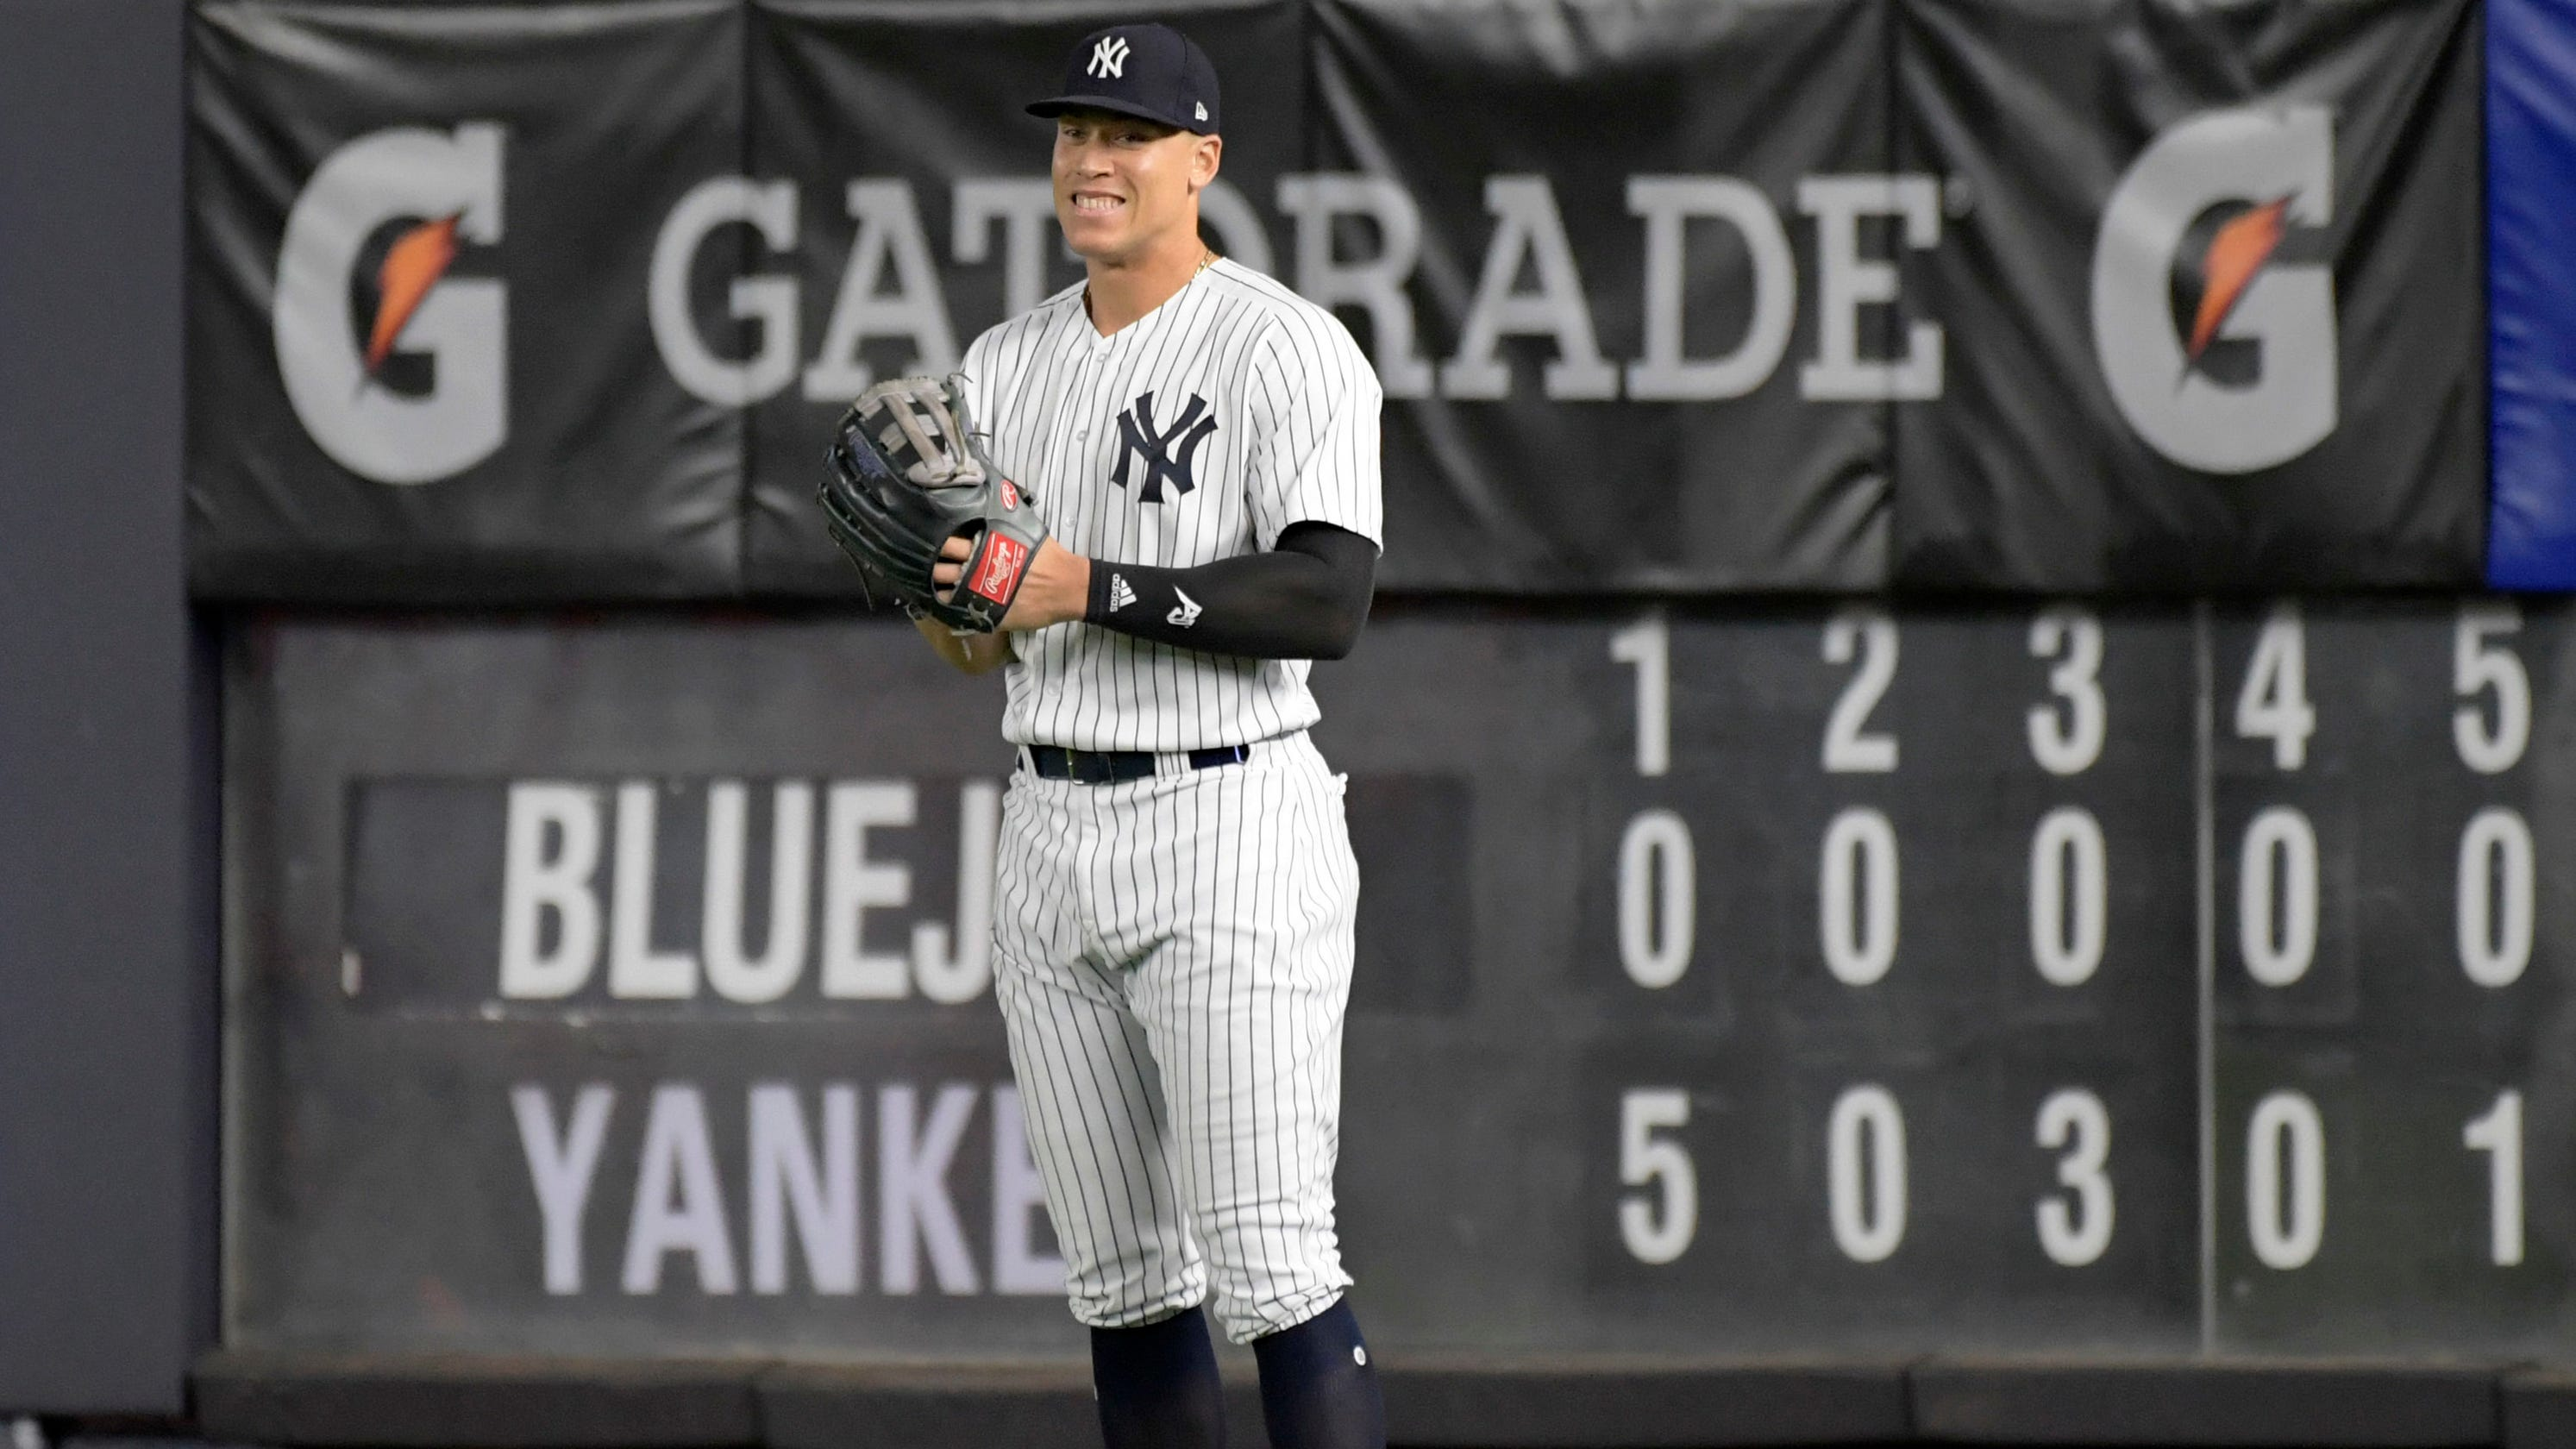 Aaron Judge returns to New York Yankees lineup vs. Boston Red Sox 057b1d23eae